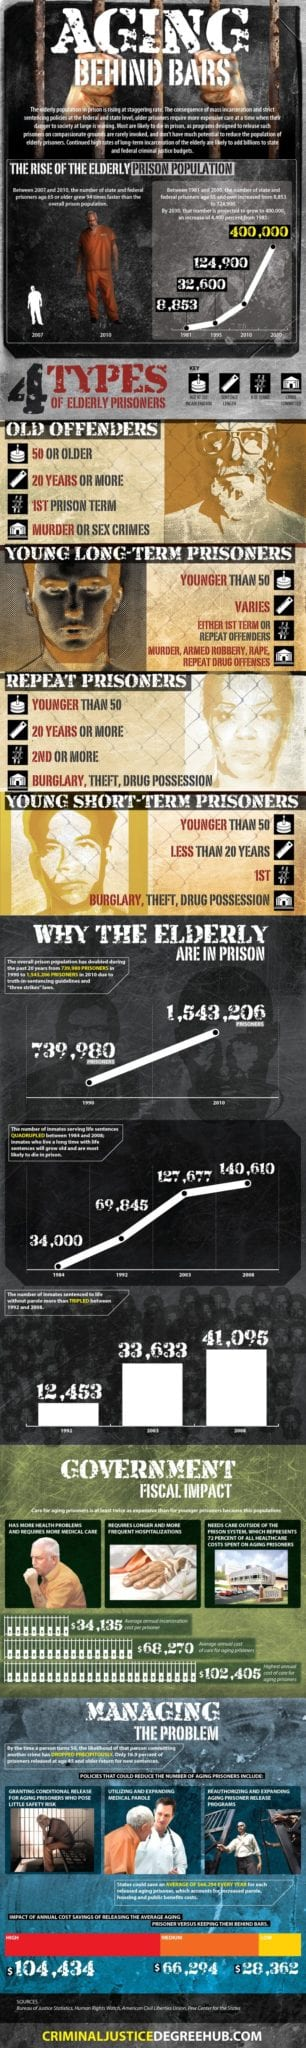 Statistics on aging prisoners in jail.  More information here:  http://www.criminaljusticedegreehub.com/geriatric-prisoners/